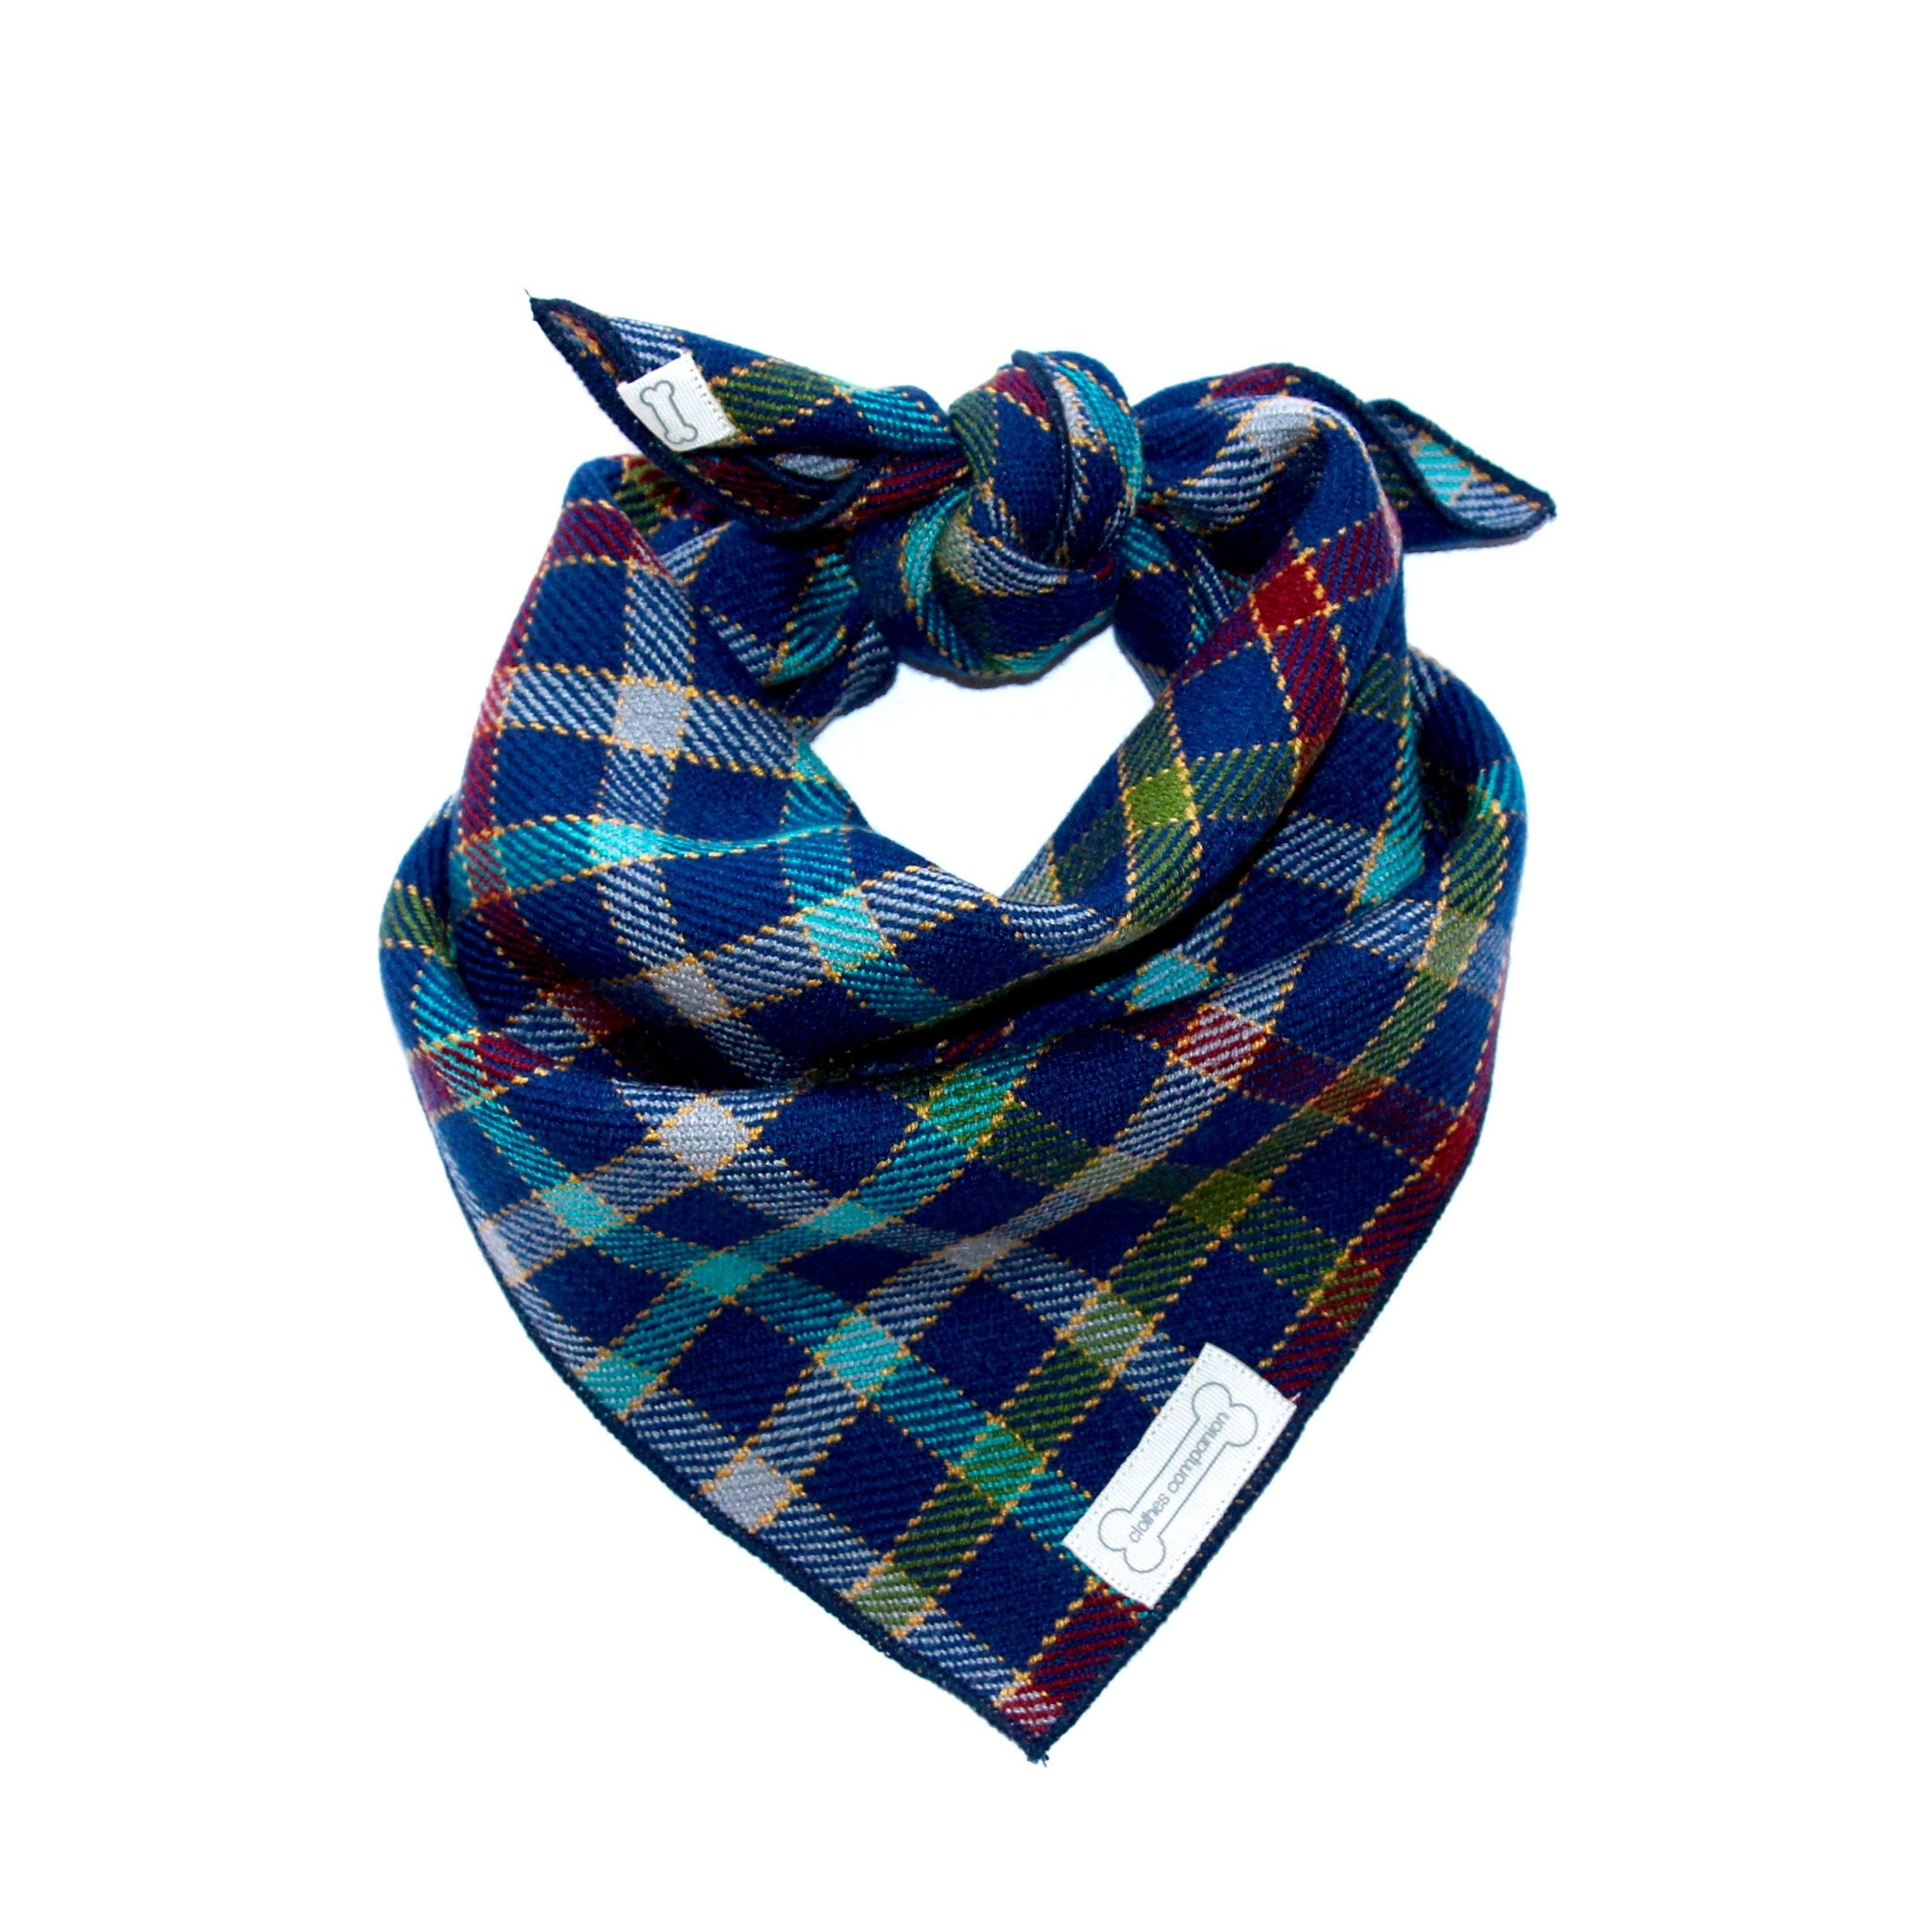 THE OLIVER CLASSIC-TIE BANDANA